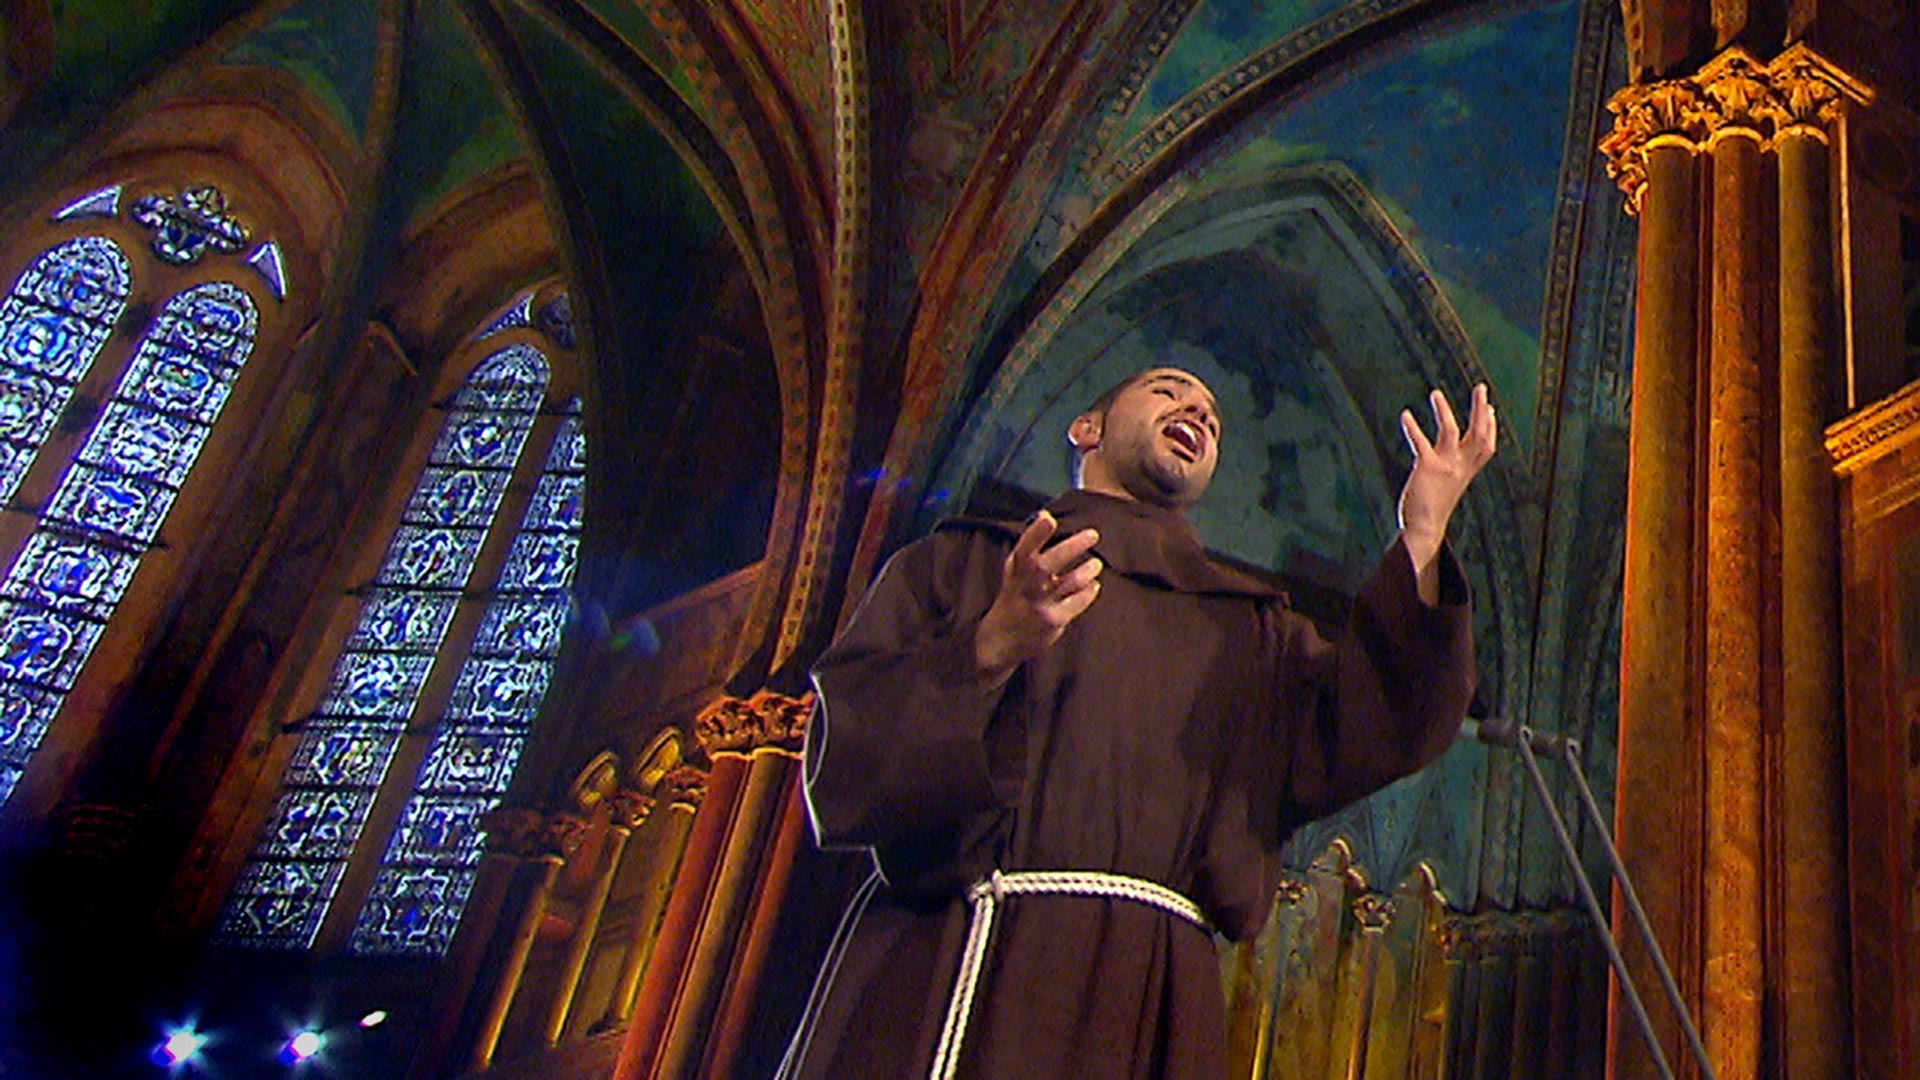 Friar Alessandro in the hilltop Basilica of St. Francis of Assisi in Italy.